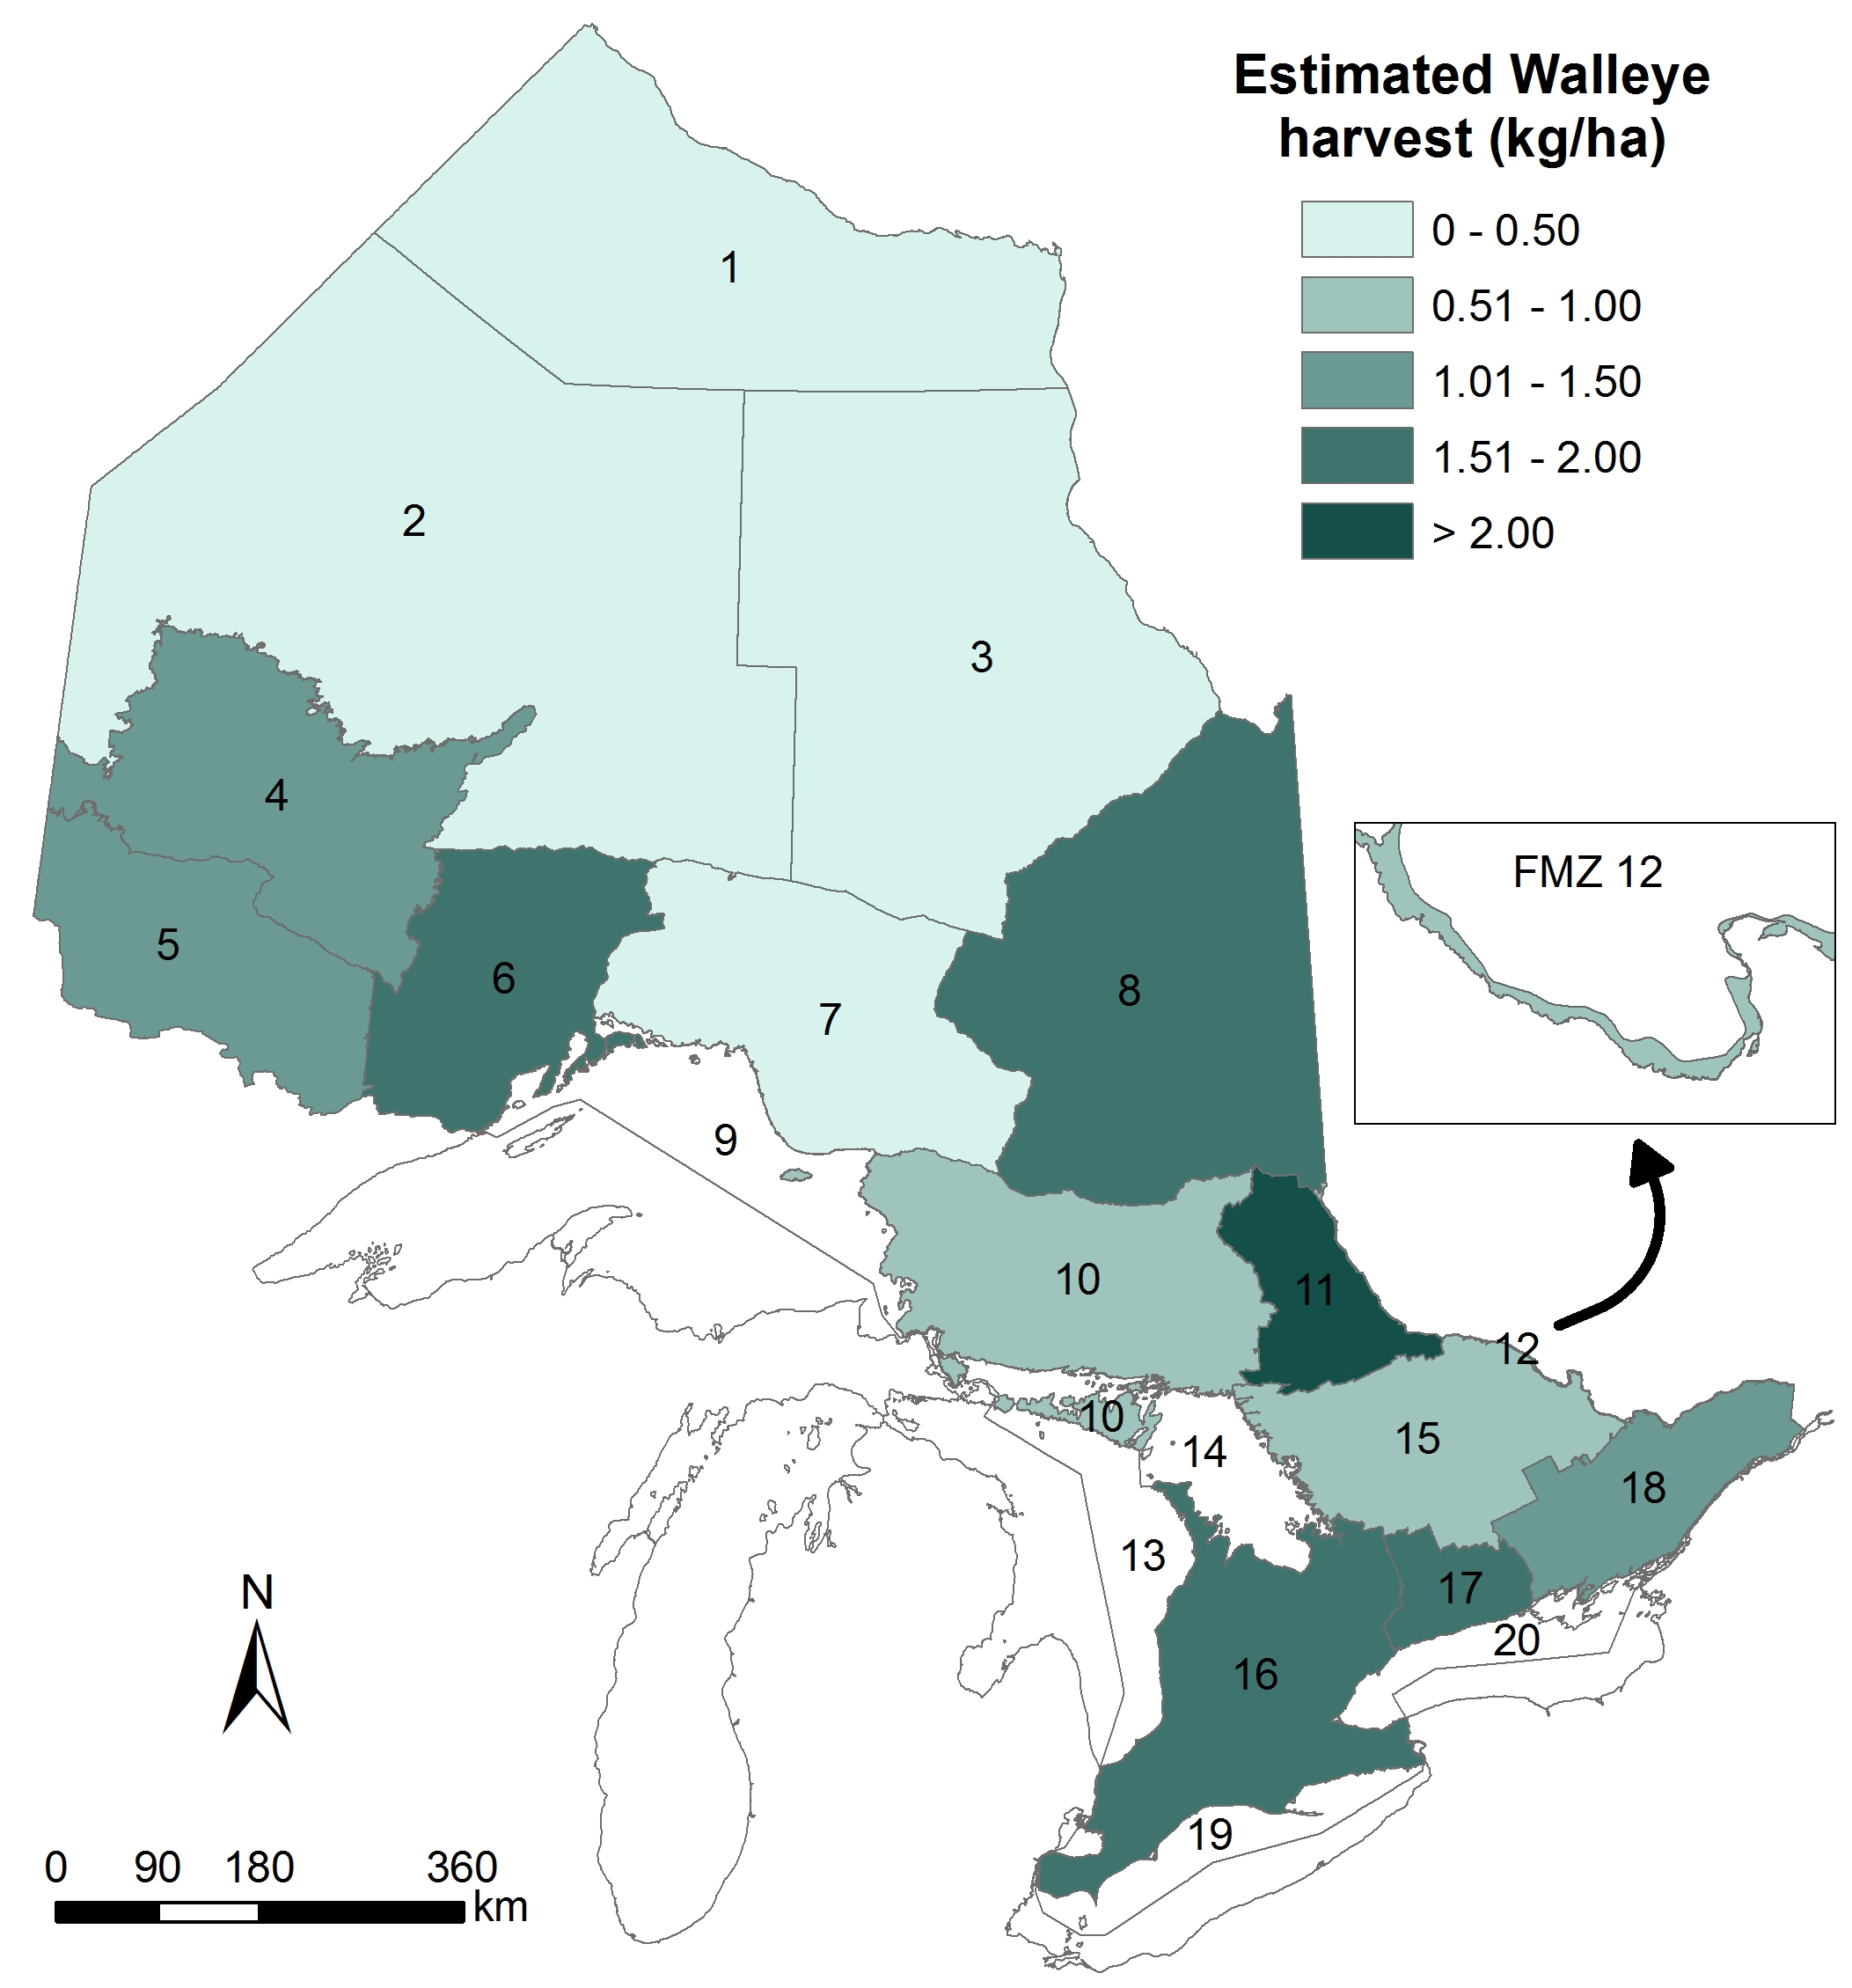 This is a map of Ontario showing the estimated level of Walleye harvest in each inland Fisheries Management Zone based on the 2010 Canadian Recreational Fishing Survey. Estimated levels of harvest are highest in Fisheries Management Zone 11 in central Ontario (> 2. 0 kg/hectare) and levels are lowest in the three Fisheries Management Zones in the Far North (0.5 kg/hectare).